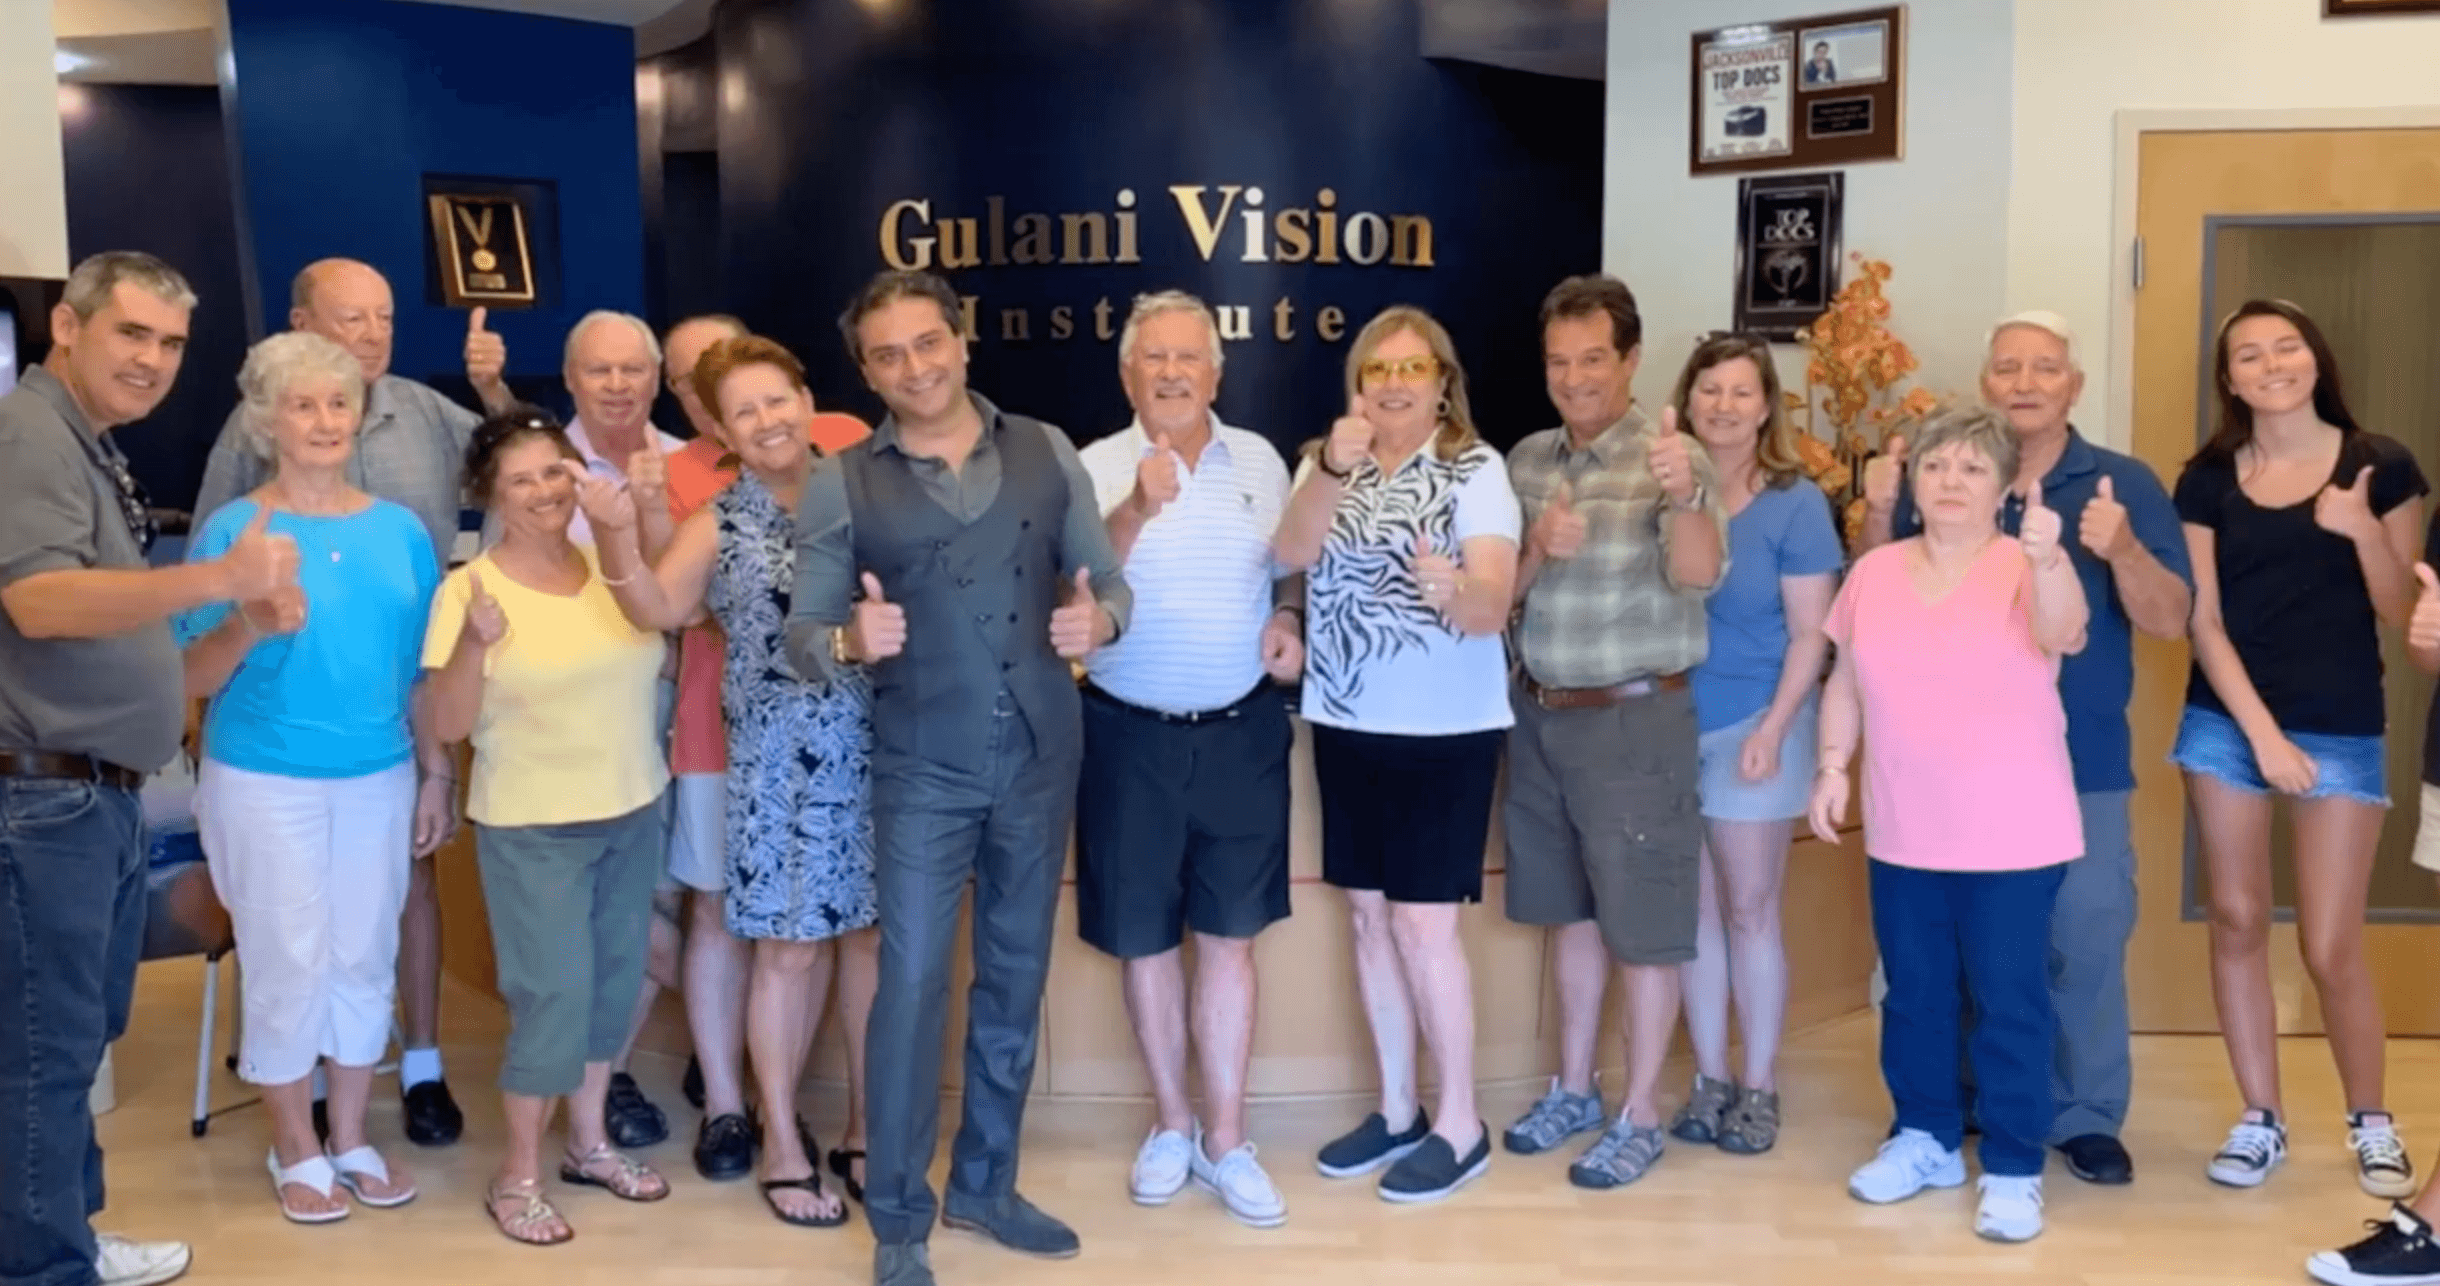 Welcome to Gulani Vision Institute